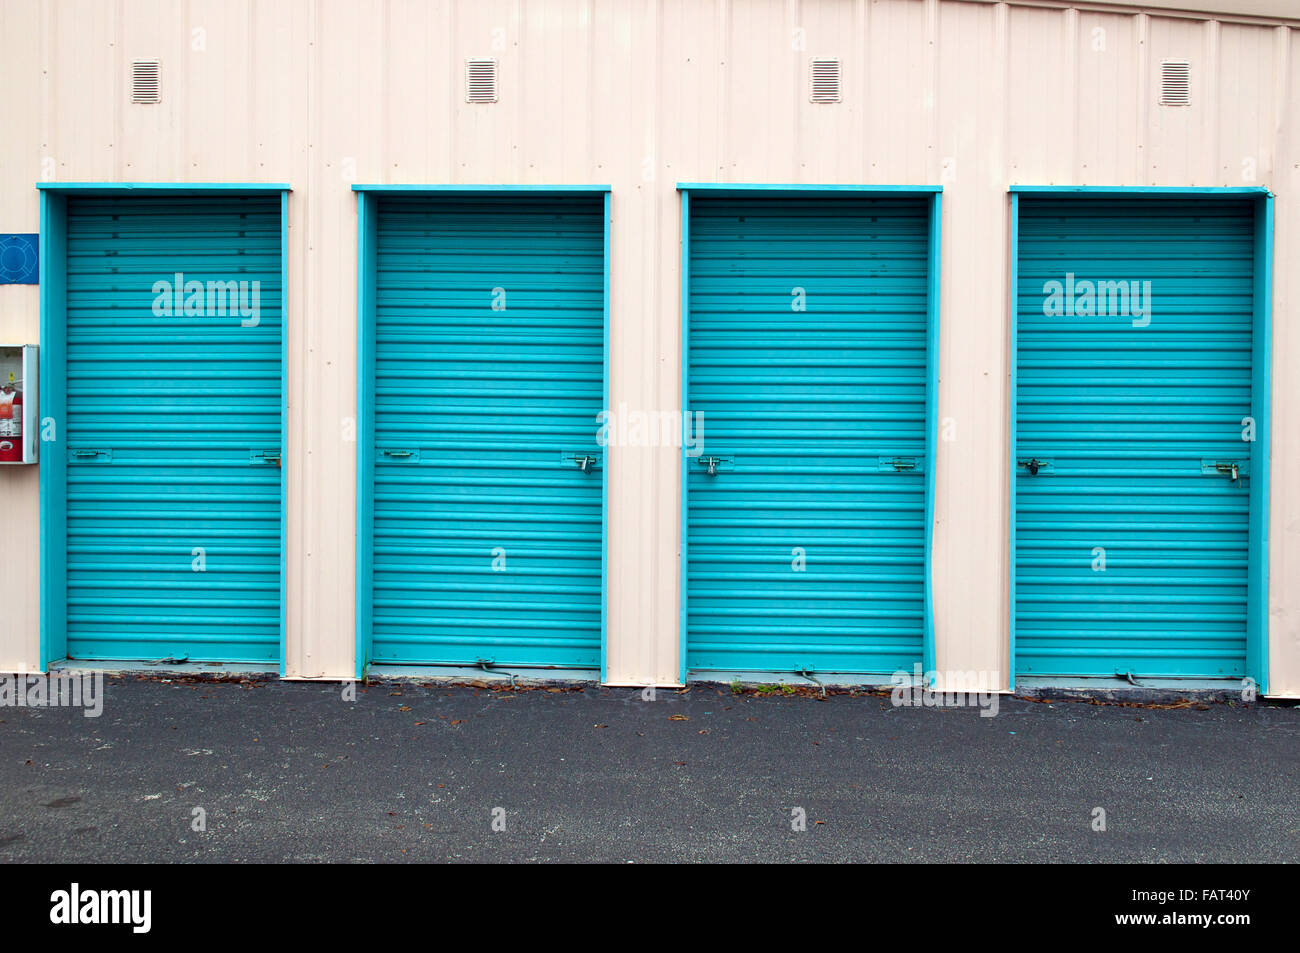 Set Of Four Metal Roll Up Doors Of Storage Units, Closed And Locked